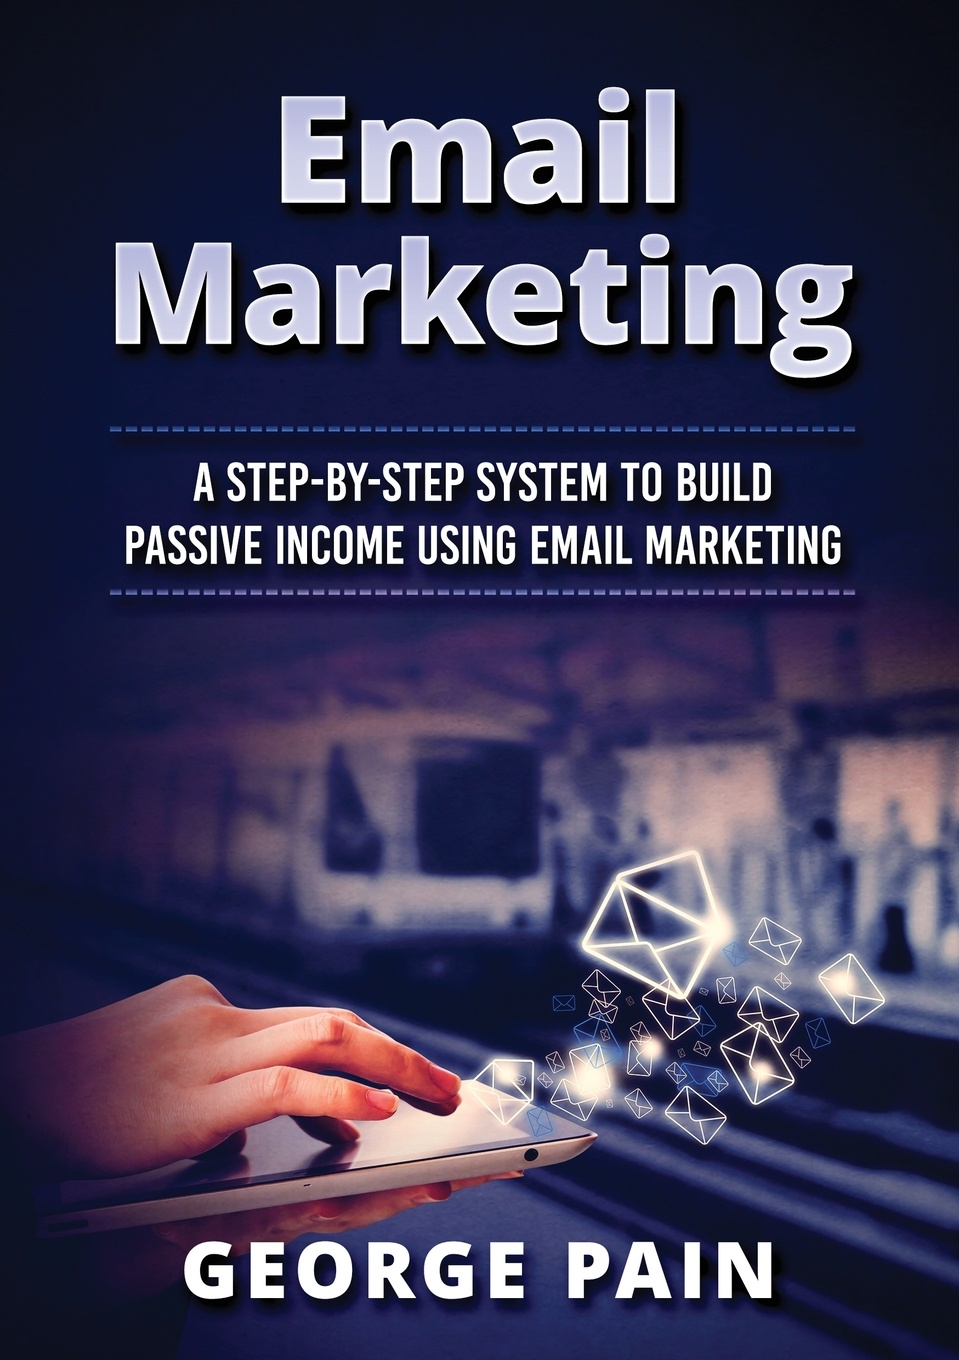 Tim Shek Email Marketing. A Step-by-Step System to Build Passive Income Using Email Marketing chris baggott email marketing by the numbers how to use the world s greatest marketing tool to take any organization to the next level